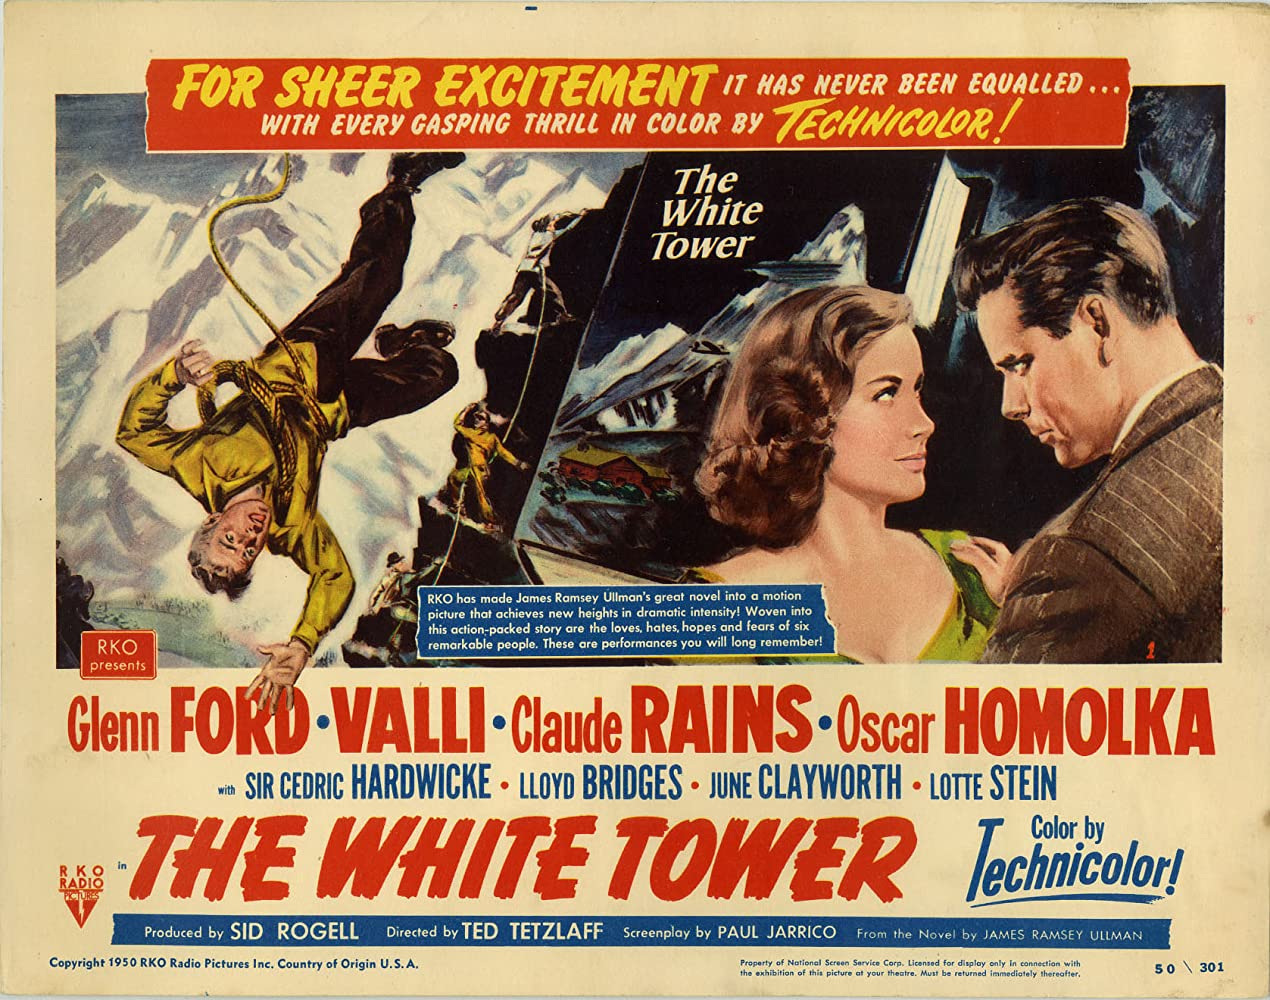 The White Tower (1950)